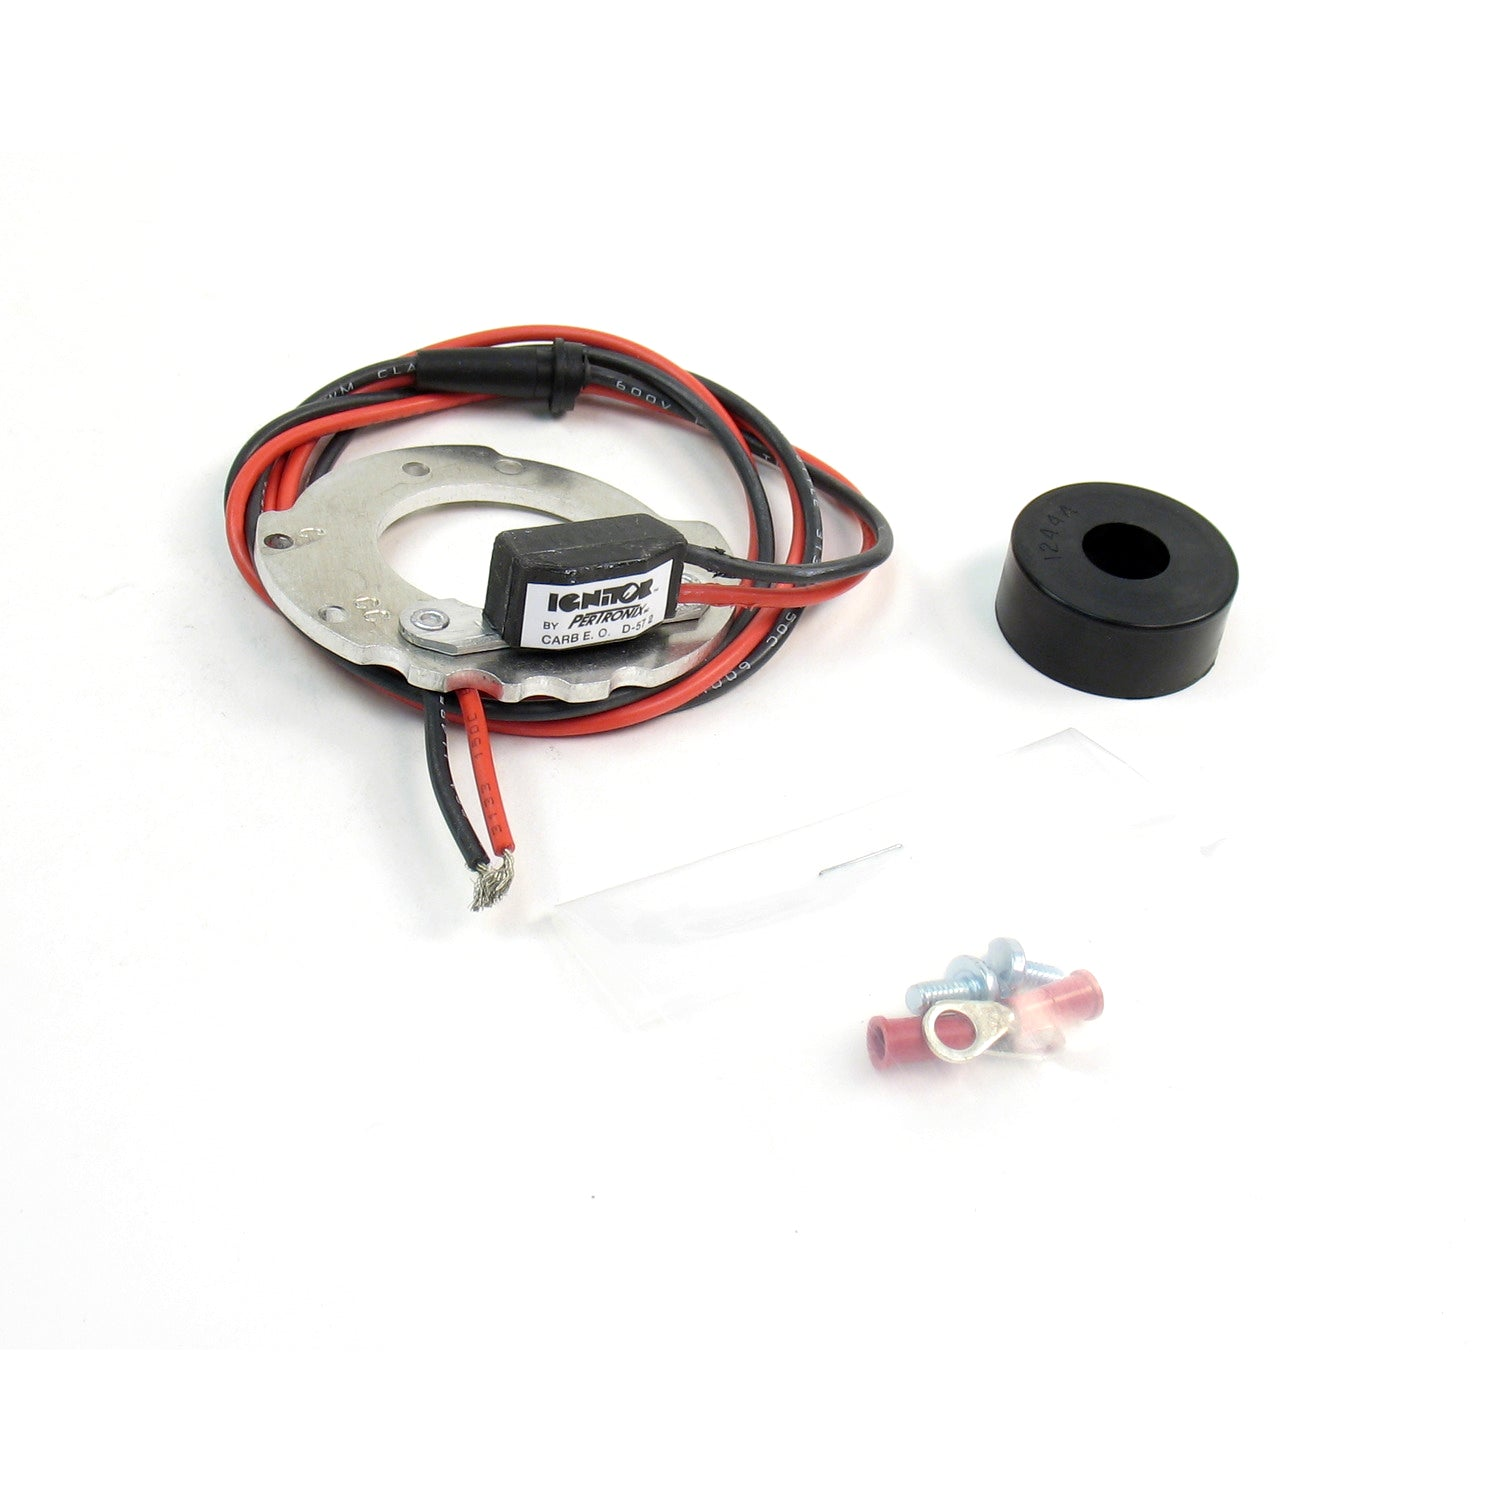 PerTronix 1244AN6 Ignitor Ford 4 cyl 6 Volt Negative Ground